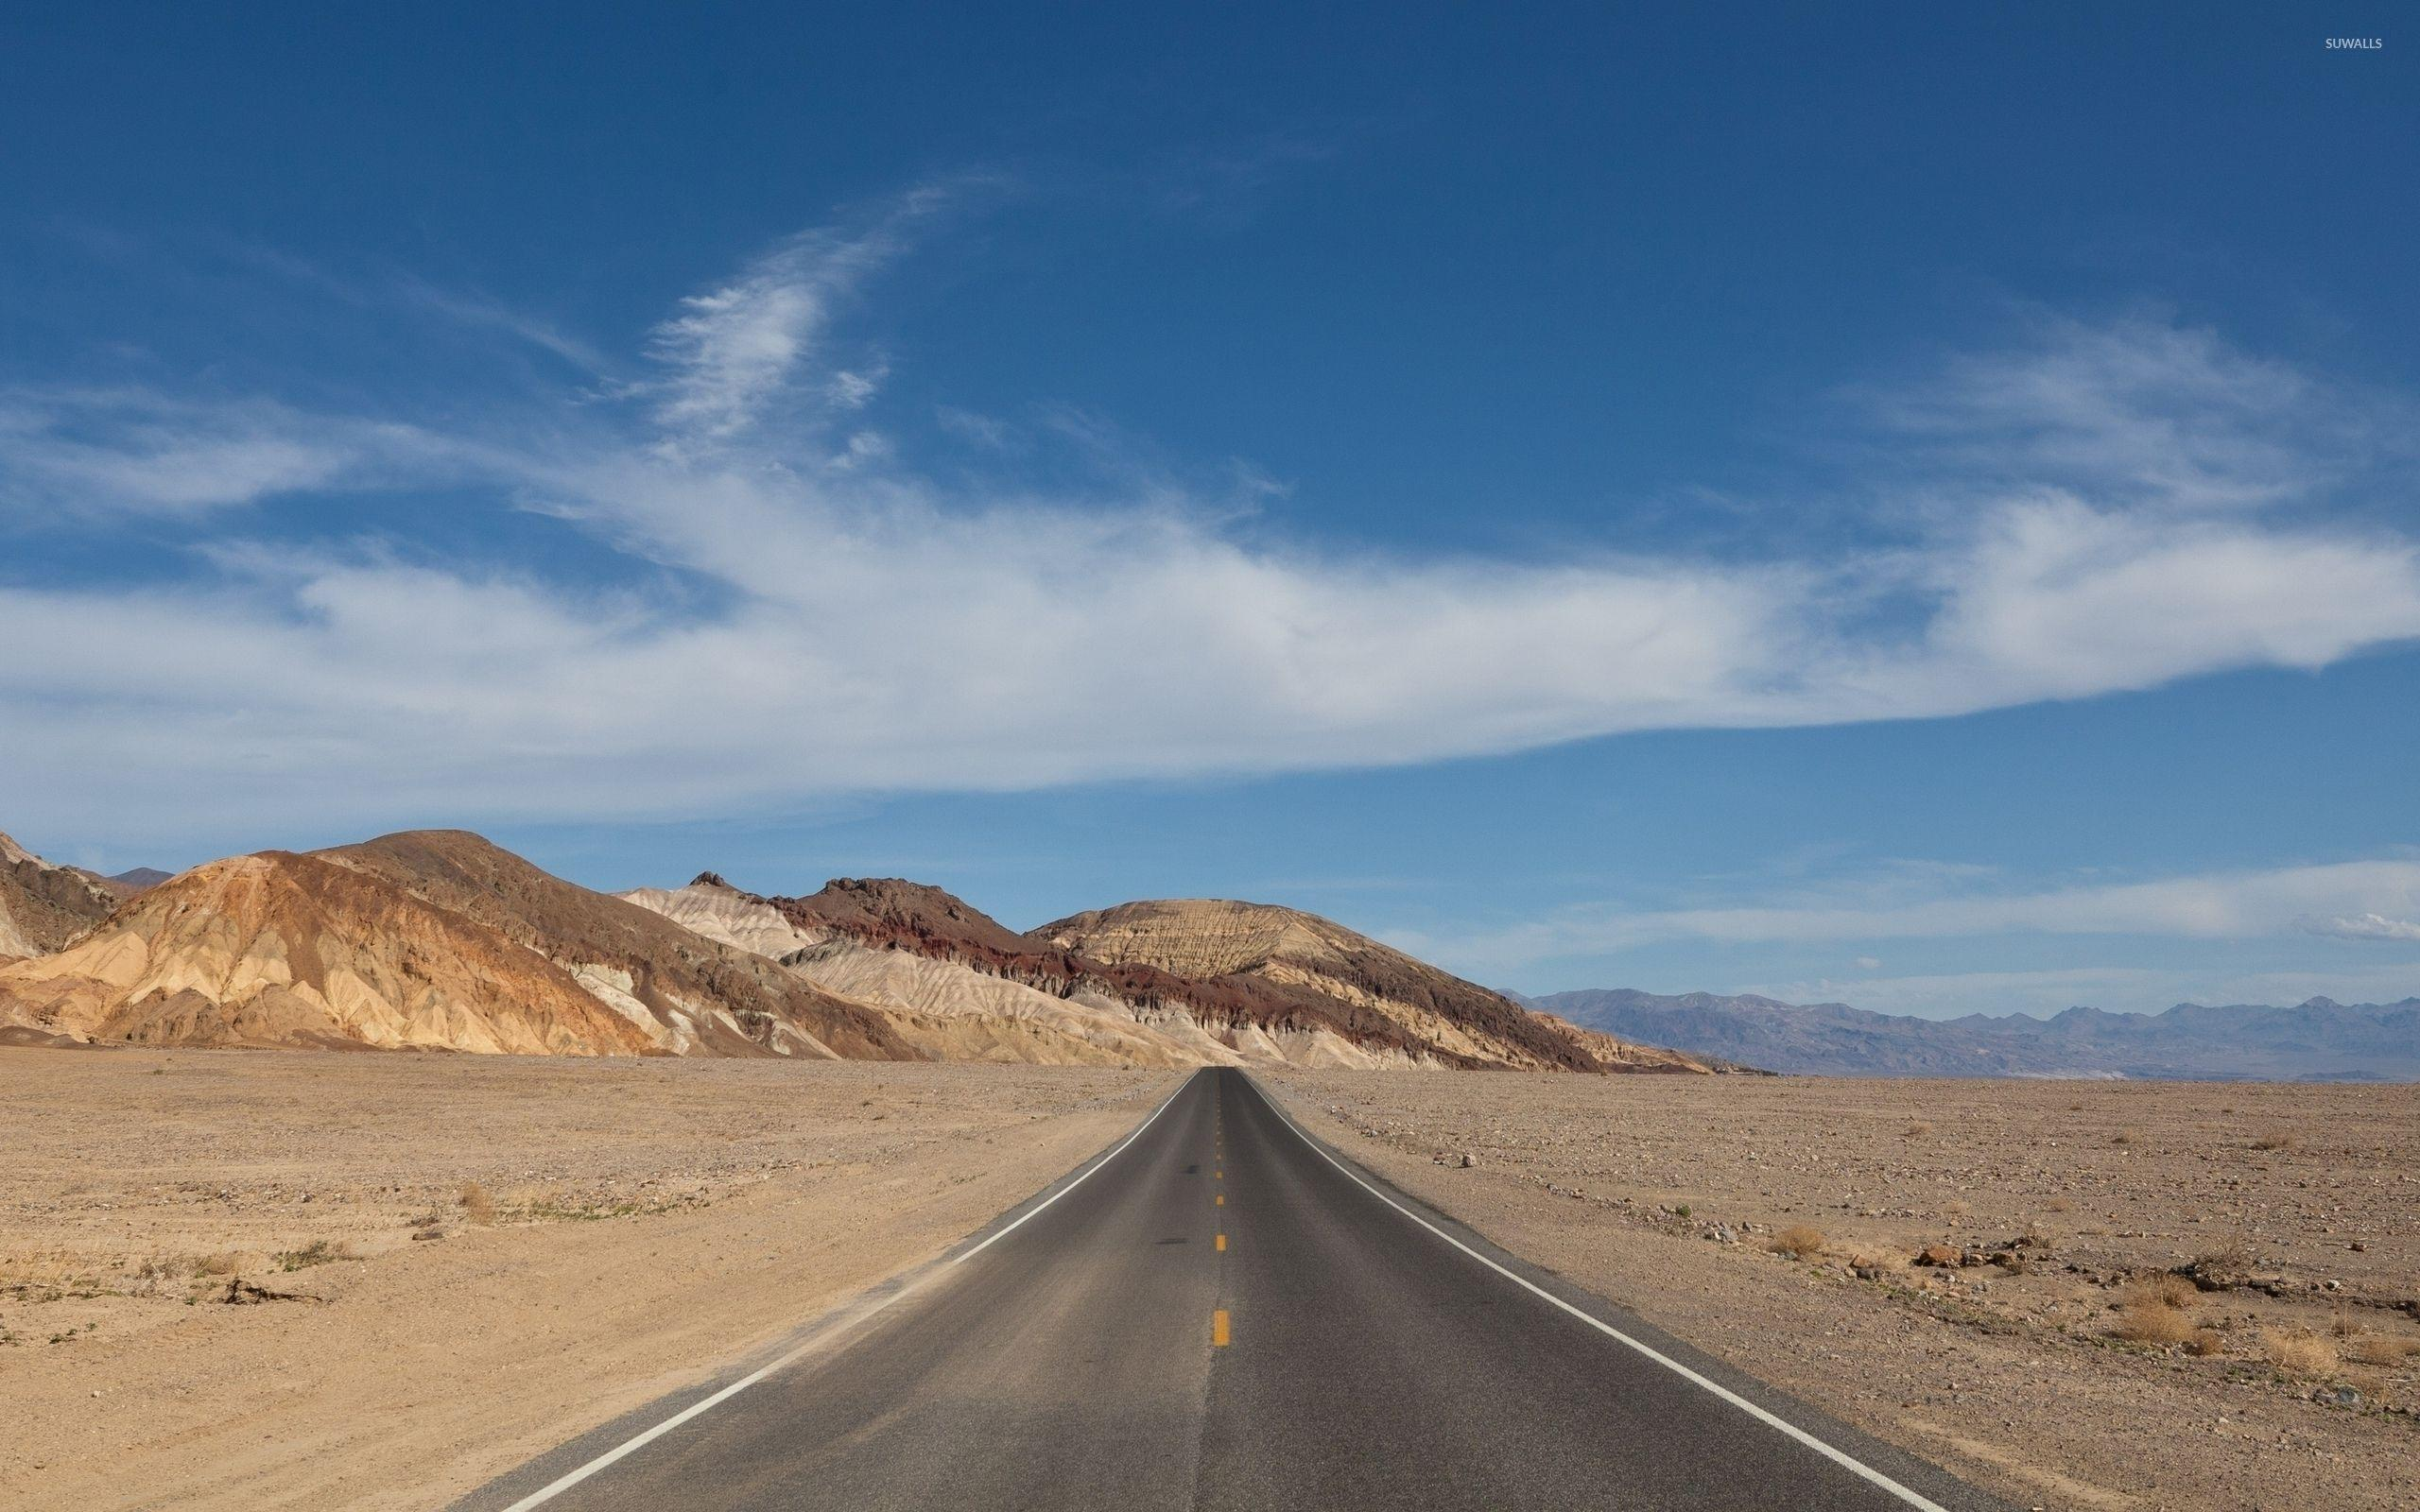 Road passing through Death Valley National Park wallpapers